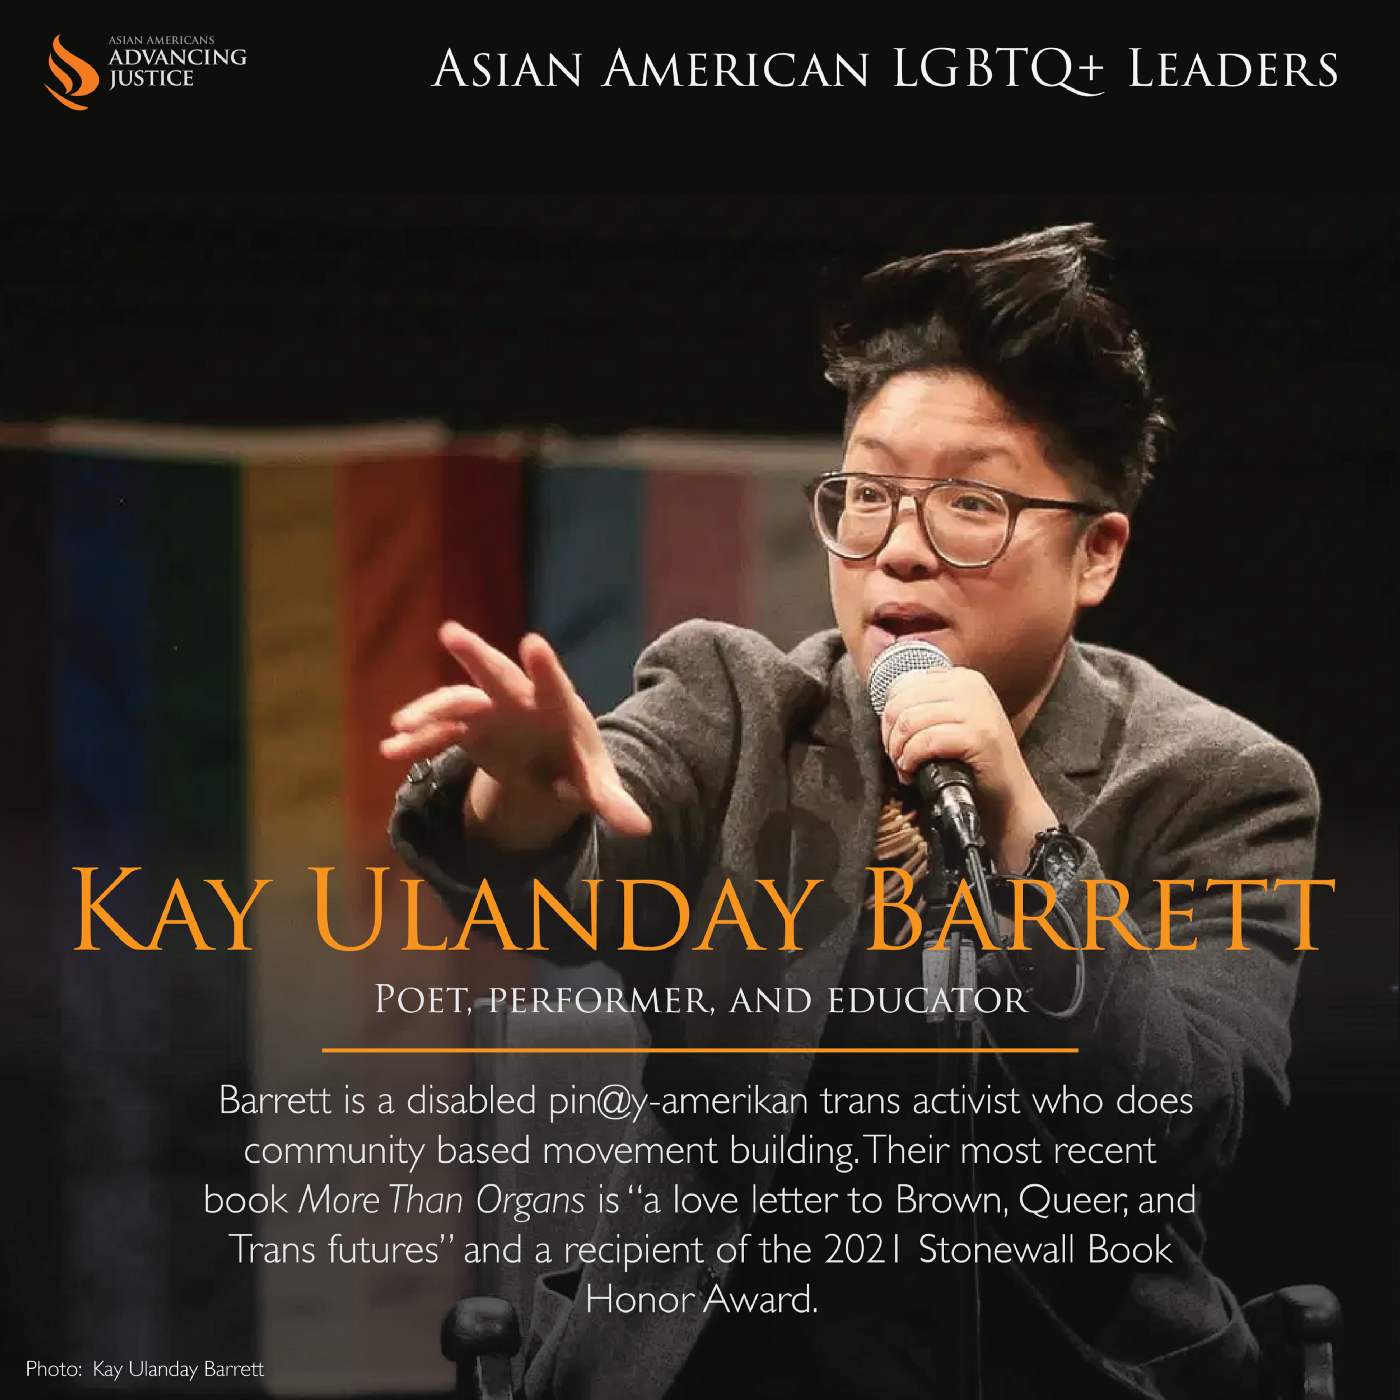 """Barrett in a grey suit coat, holding a microphone in one hand and gesturing with the other in front of a rainbow gay pride and blue, pink, and white transgender pride flag. The text reads: Kay Ulanday Barrett, Poet, performer, and educator. Barrett is a disabled pin@y-amerikan trans activist who does community based movement building. Their most recent book More Than Organs is """"a love letter to Brown, Queer, and Trans futures"""" and a recipient of the 2021 Stonewall Book Honor Award."""